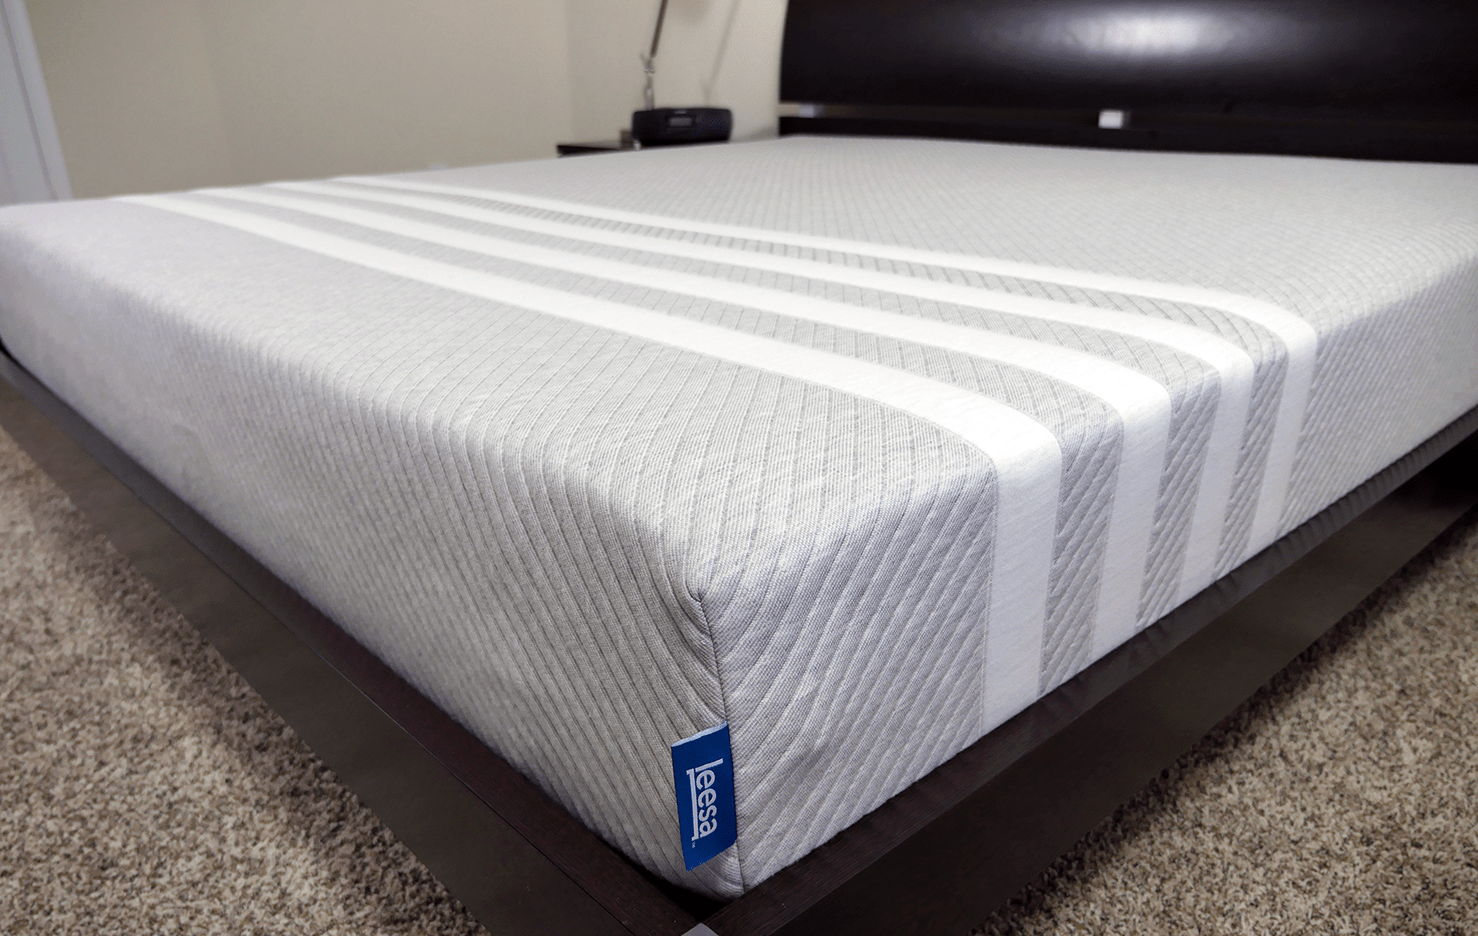 Leesa Mattress Review Leesa Mattress Mattresses Reviews Mattress